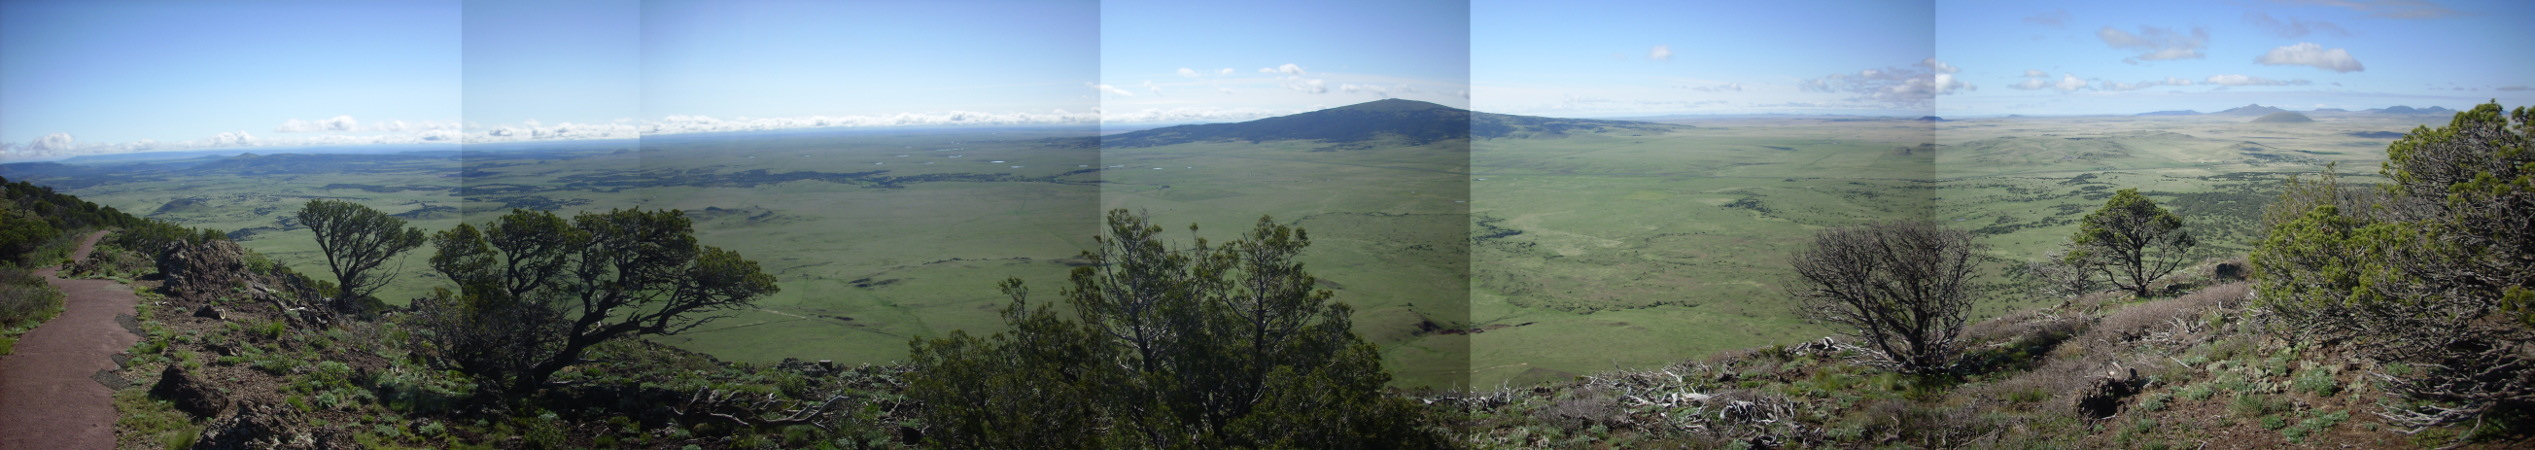 Southeast panorama from Capulin